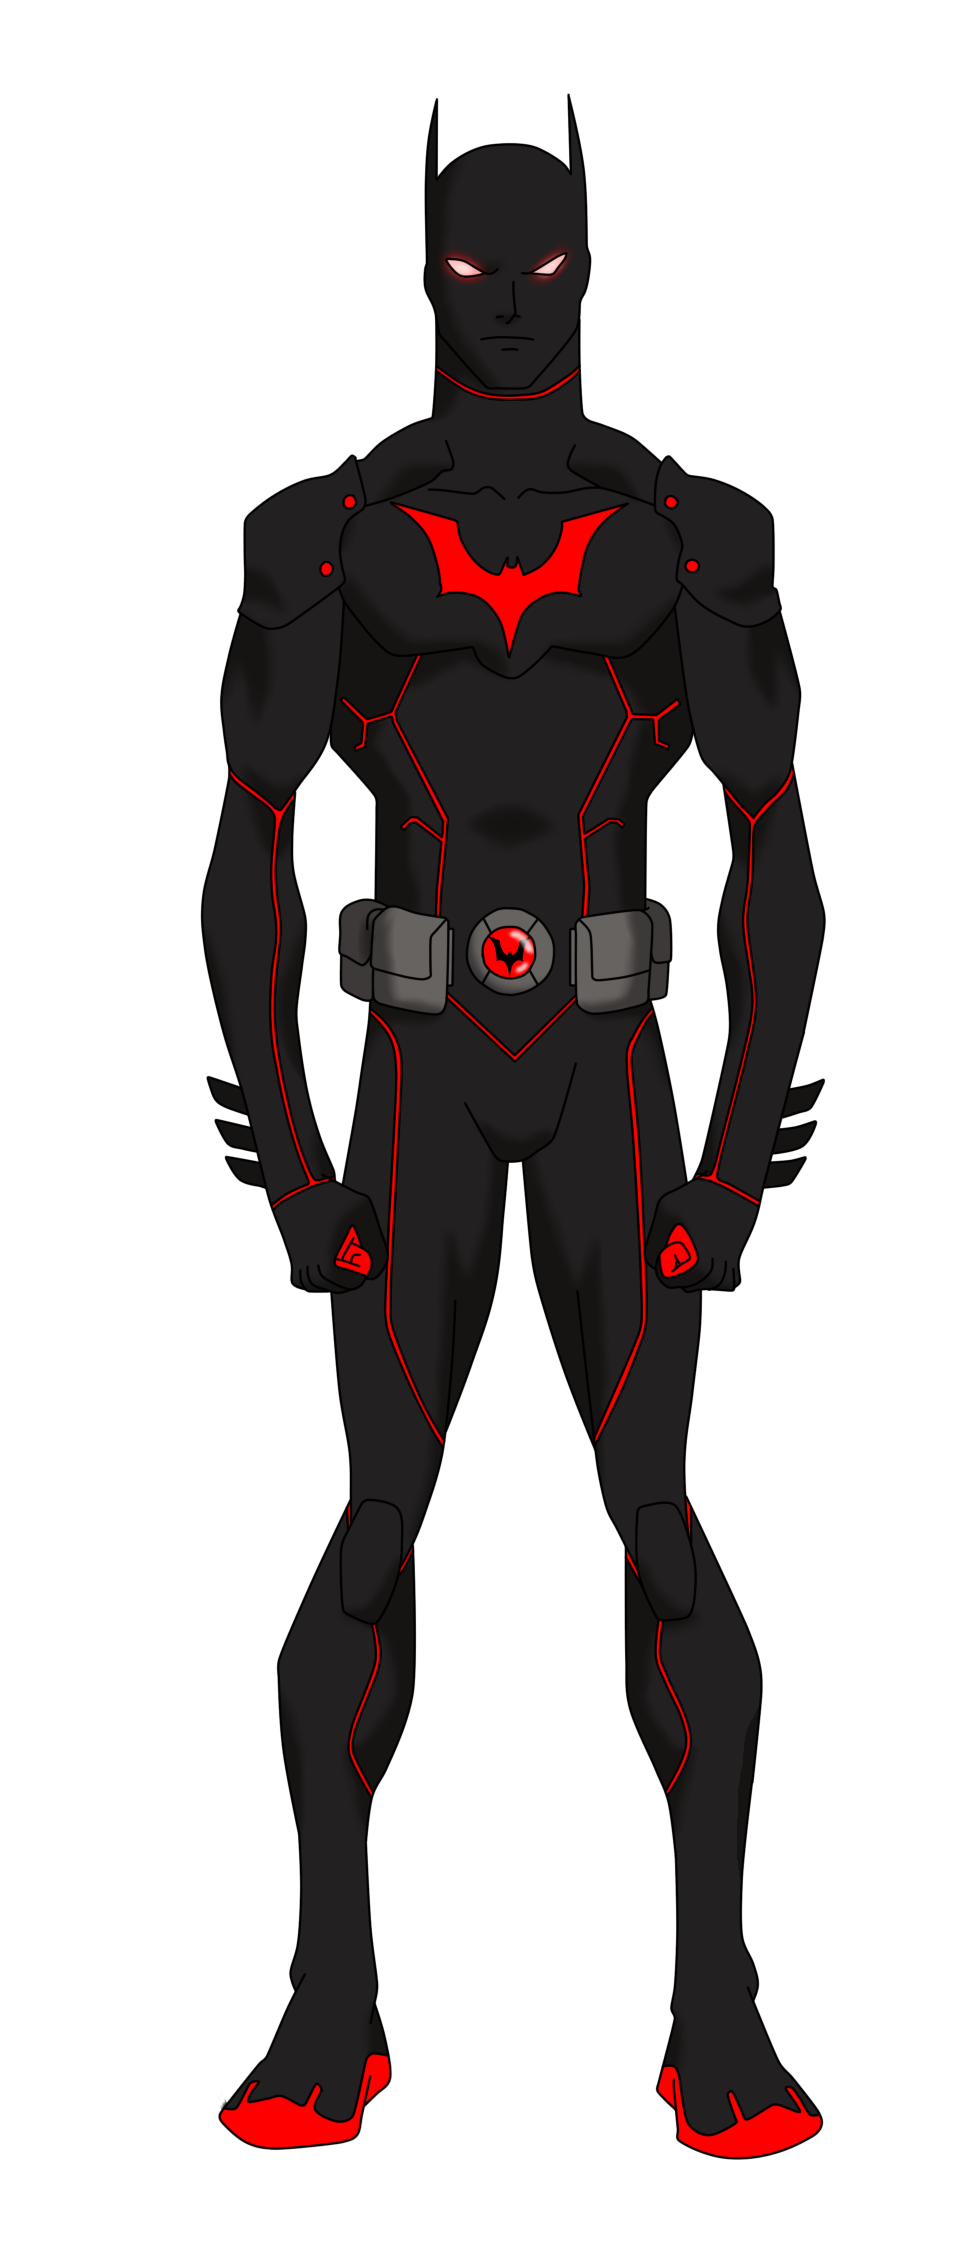 Batman Beyond Render Images amp Pictures Becuo